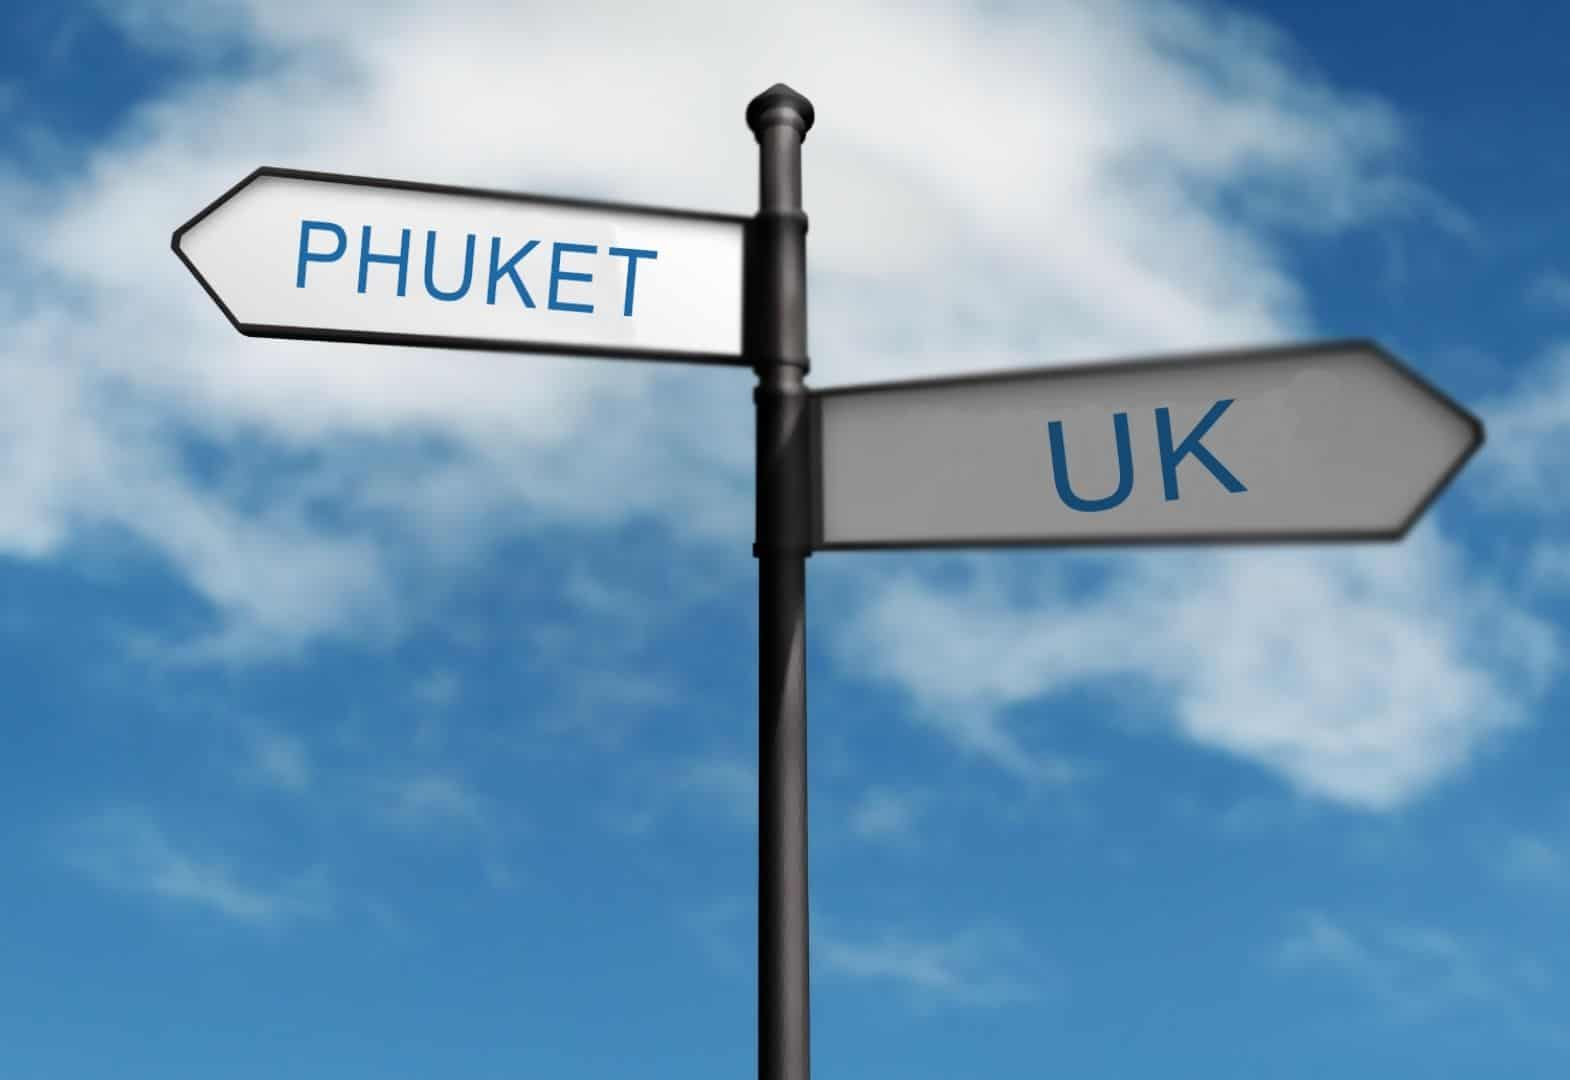 Is the UK best for Hong Kong people who want a brighter future? What about Phuket?